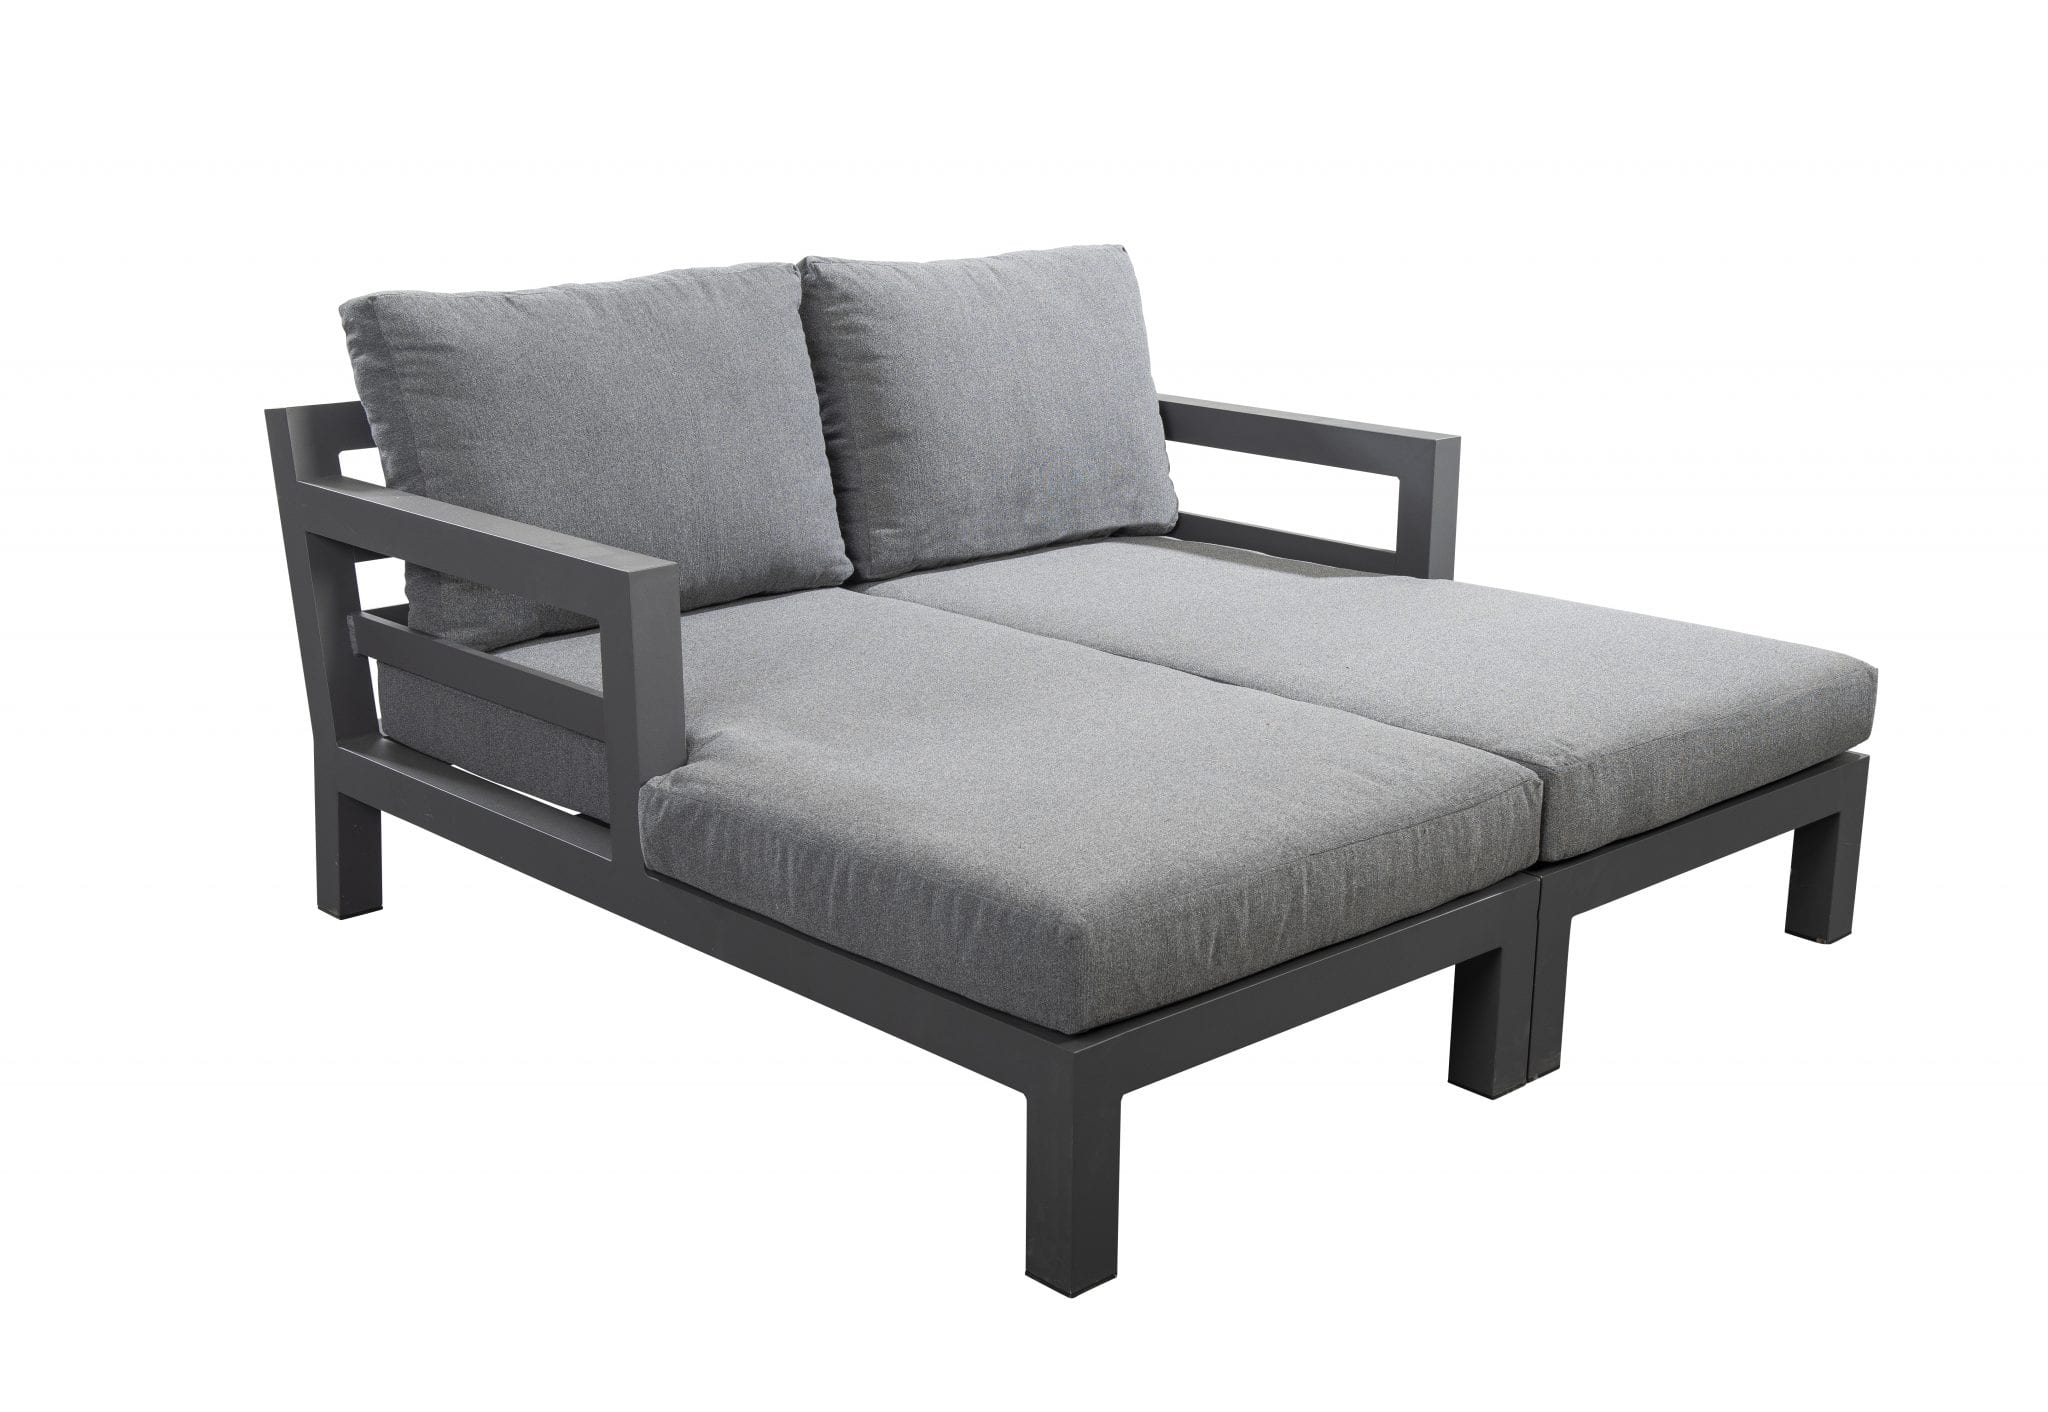 Midori divan set - dark grey | Yoi Furniture